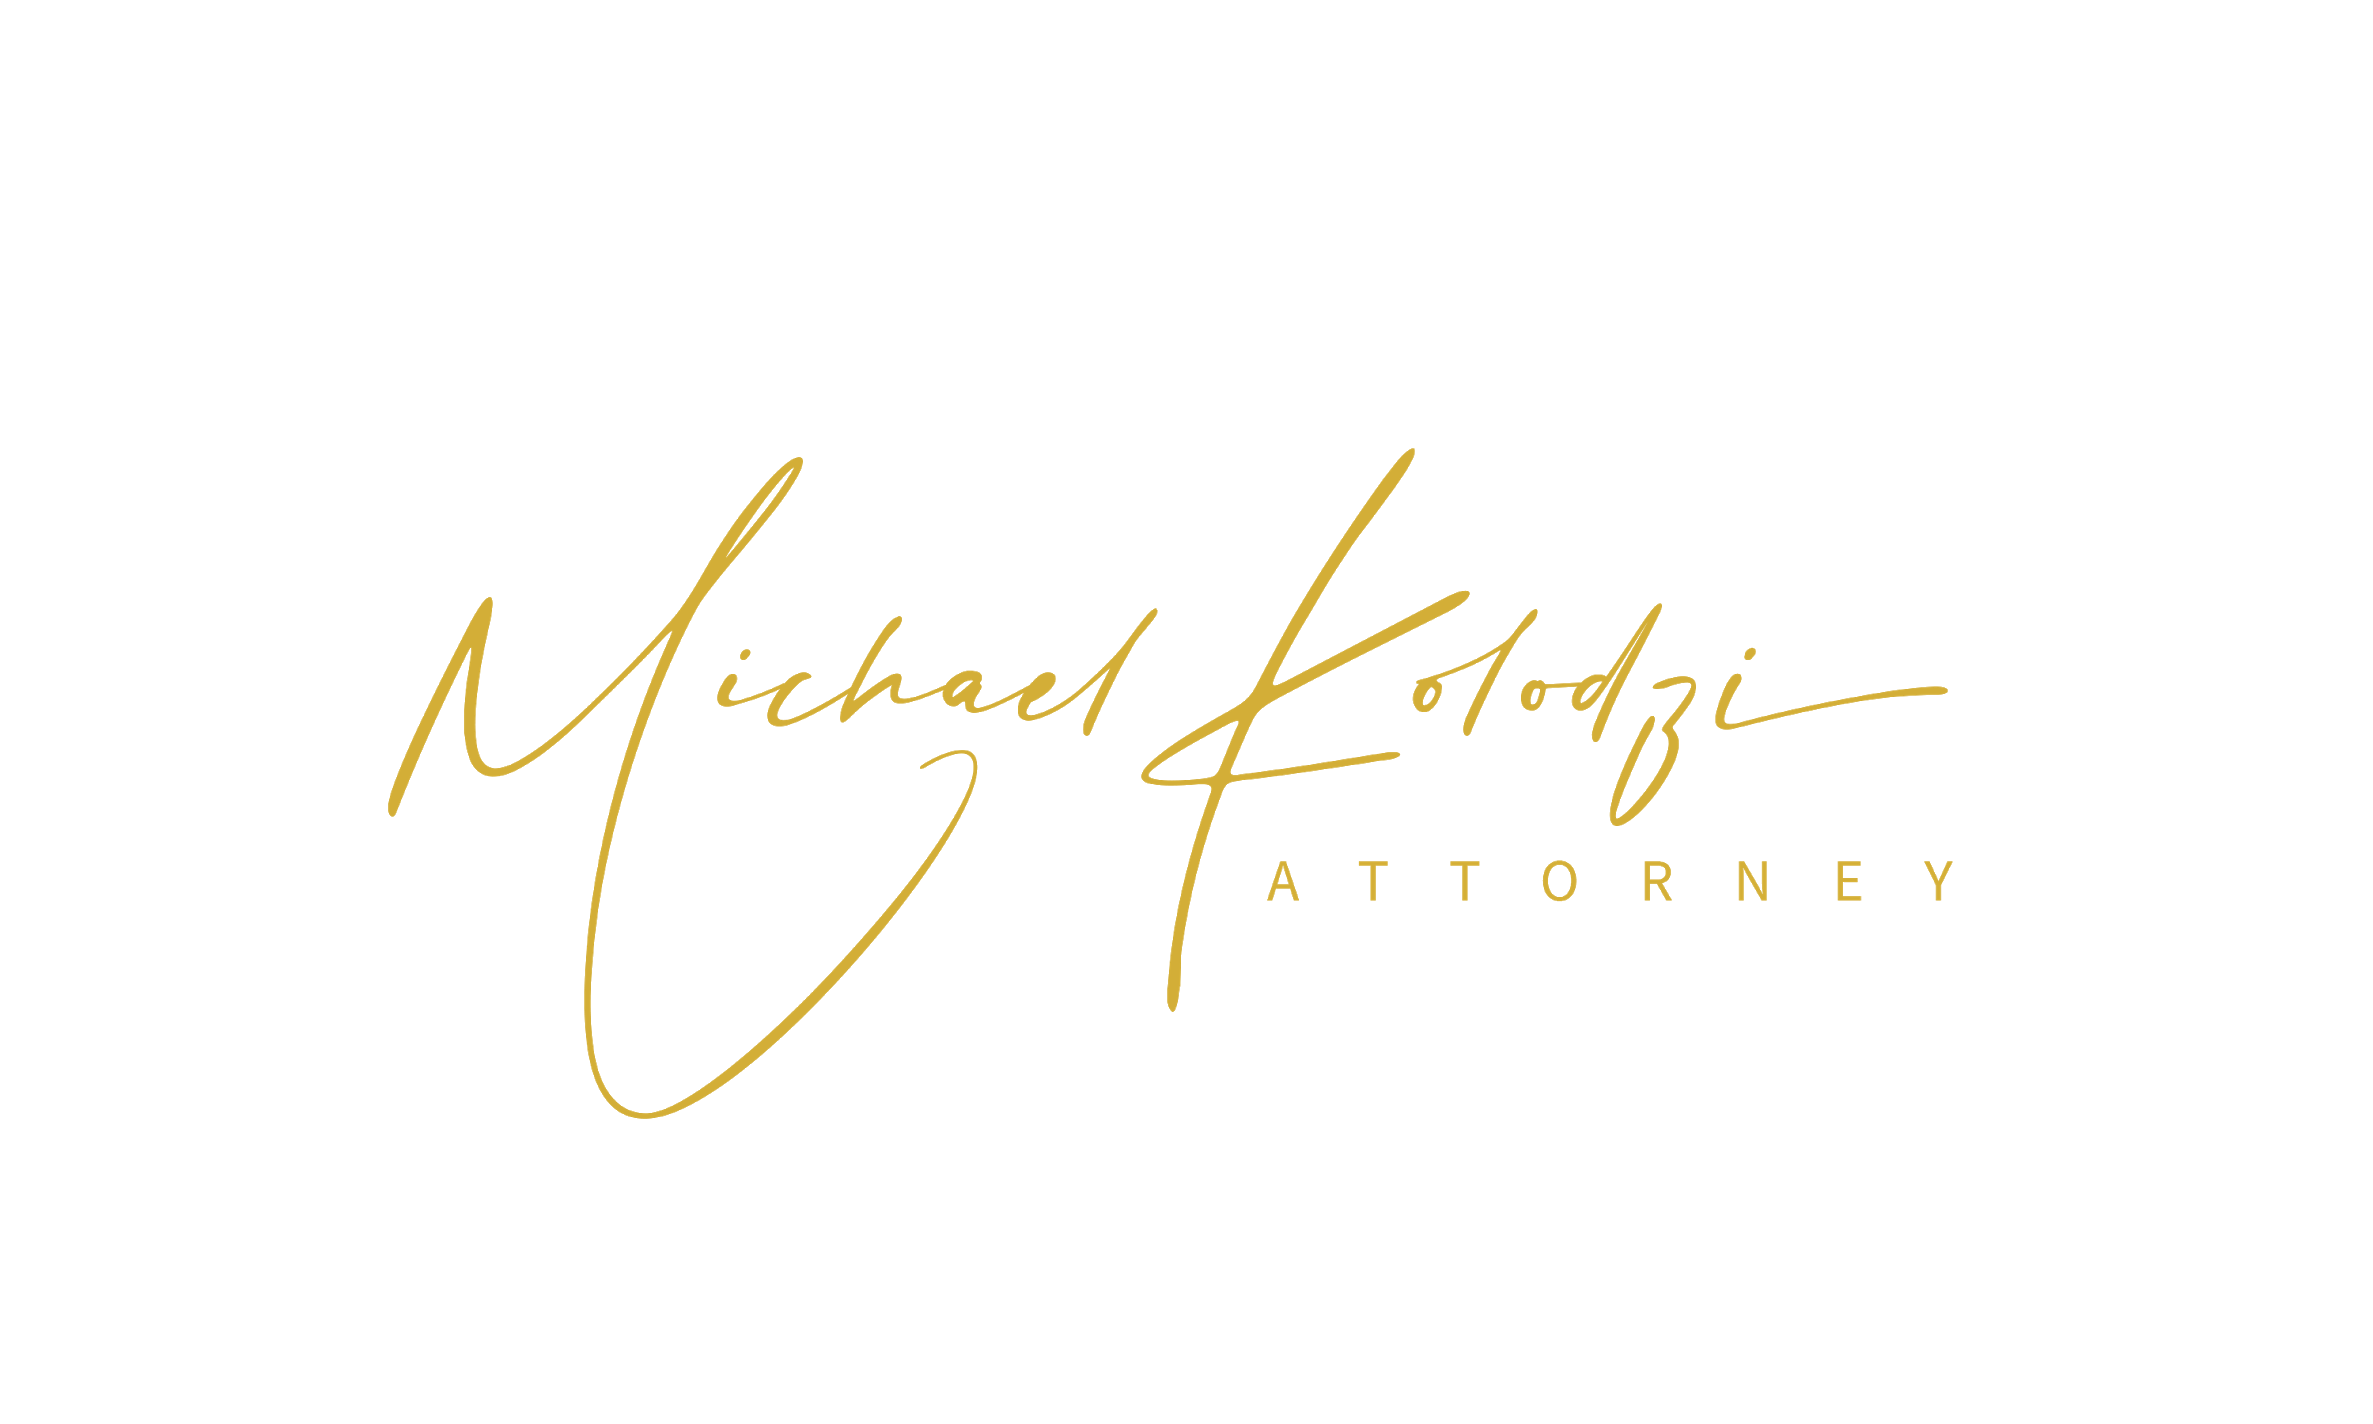 Michael D. Kolodzi Attorney at Law MDK Firm